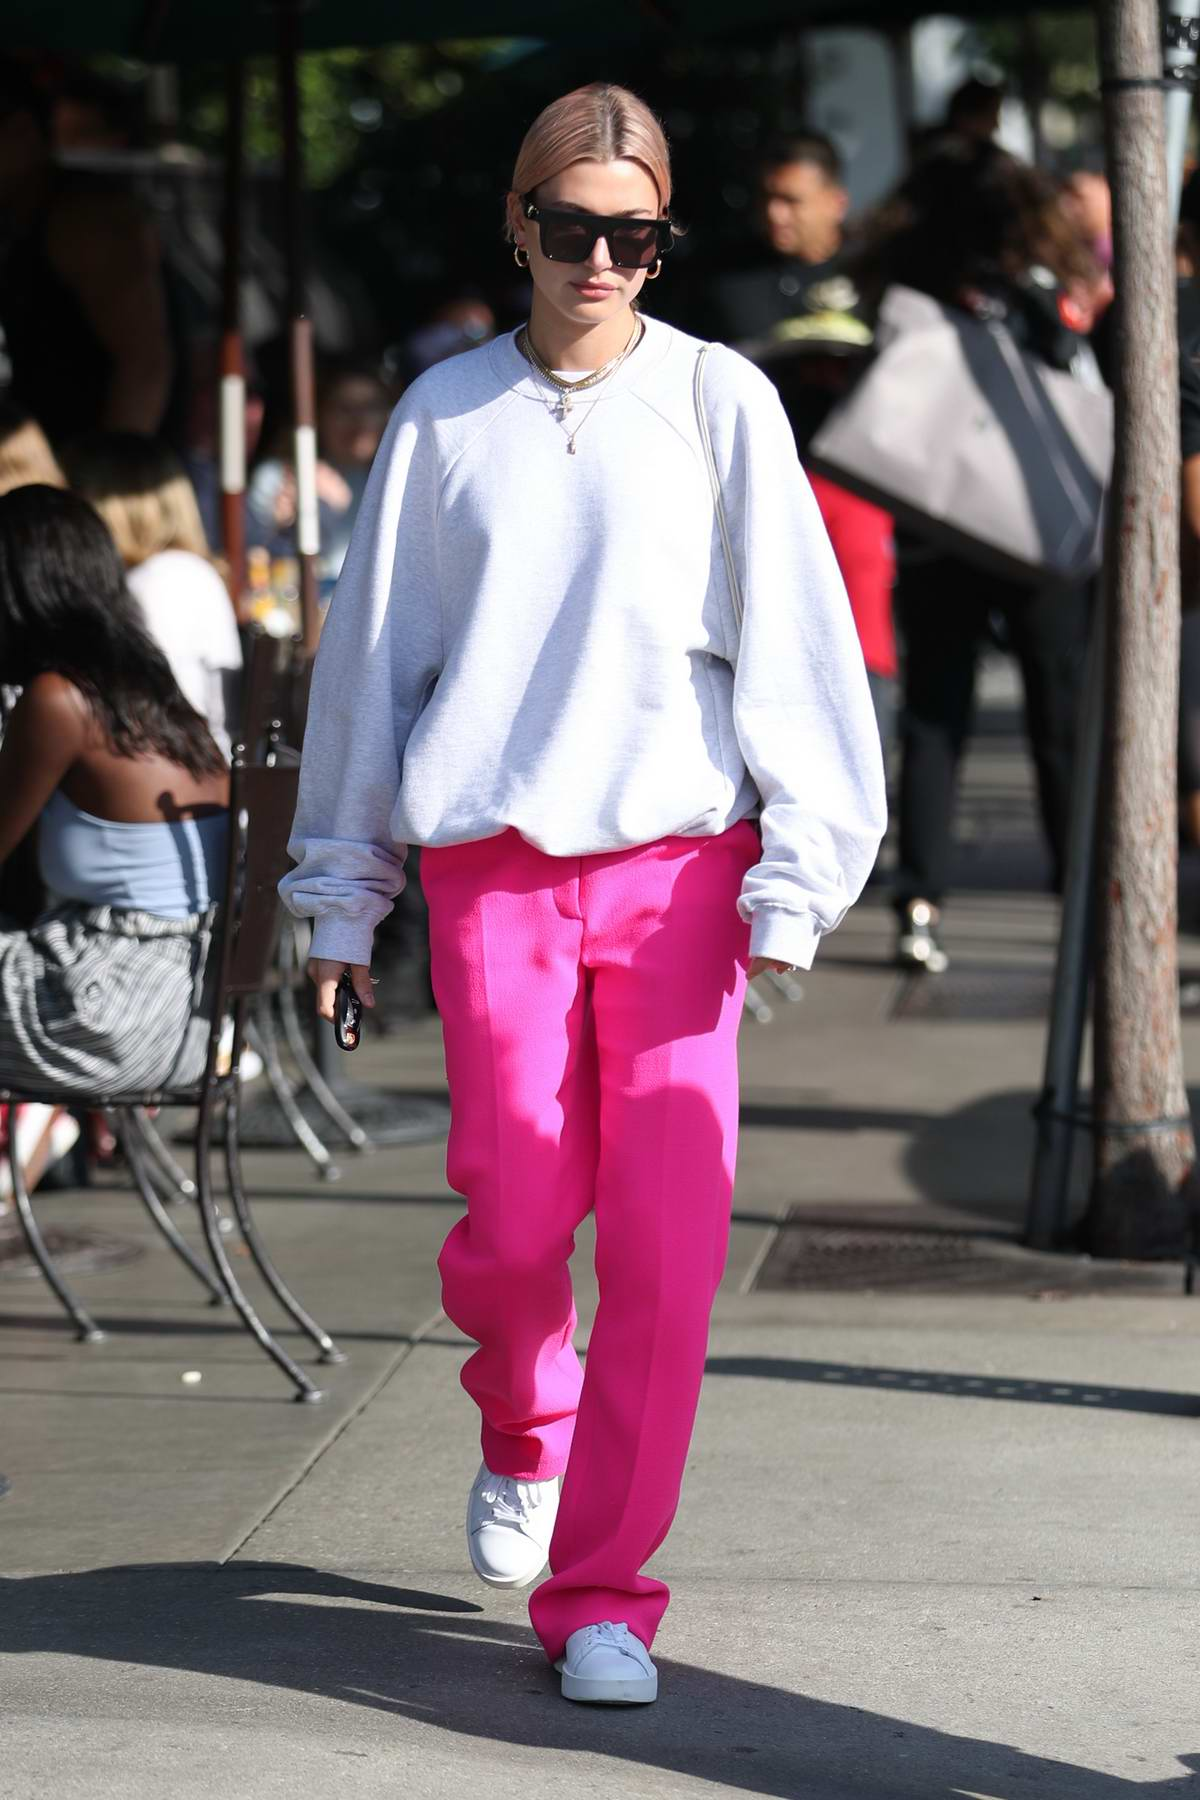 Hailey Baldwin wears bright pink pants and white sweatshirt to lunch at Urth Caffe in West Hollywood, Los Angeles